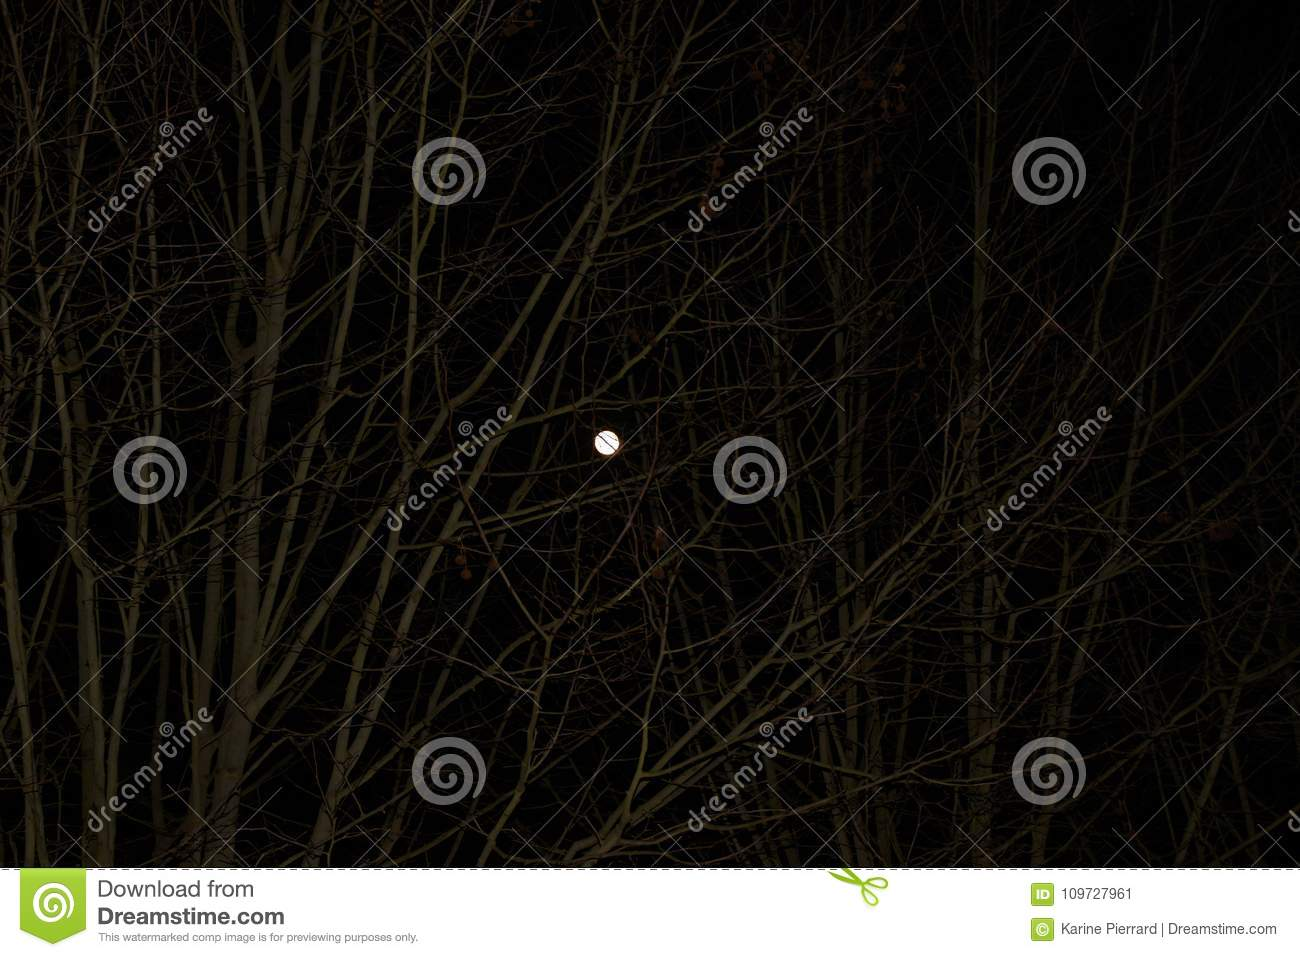 A brilliant moonlight - Seen from a distance